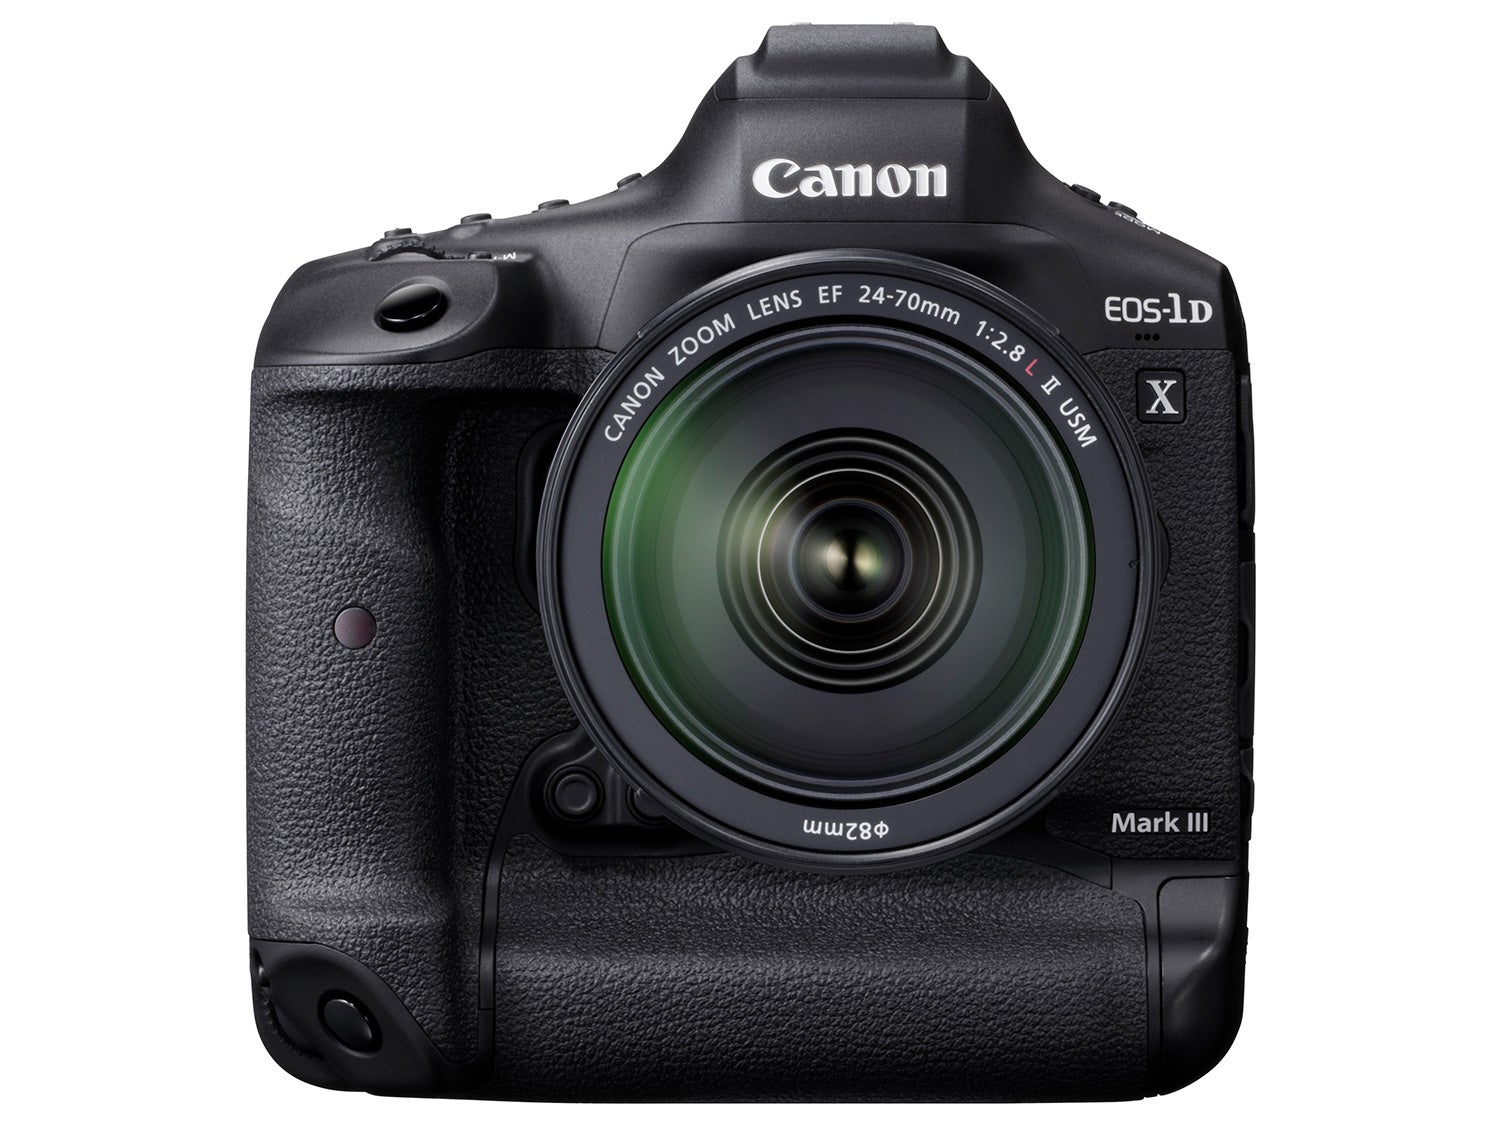 Canon is officially working on a 1DX Mark III